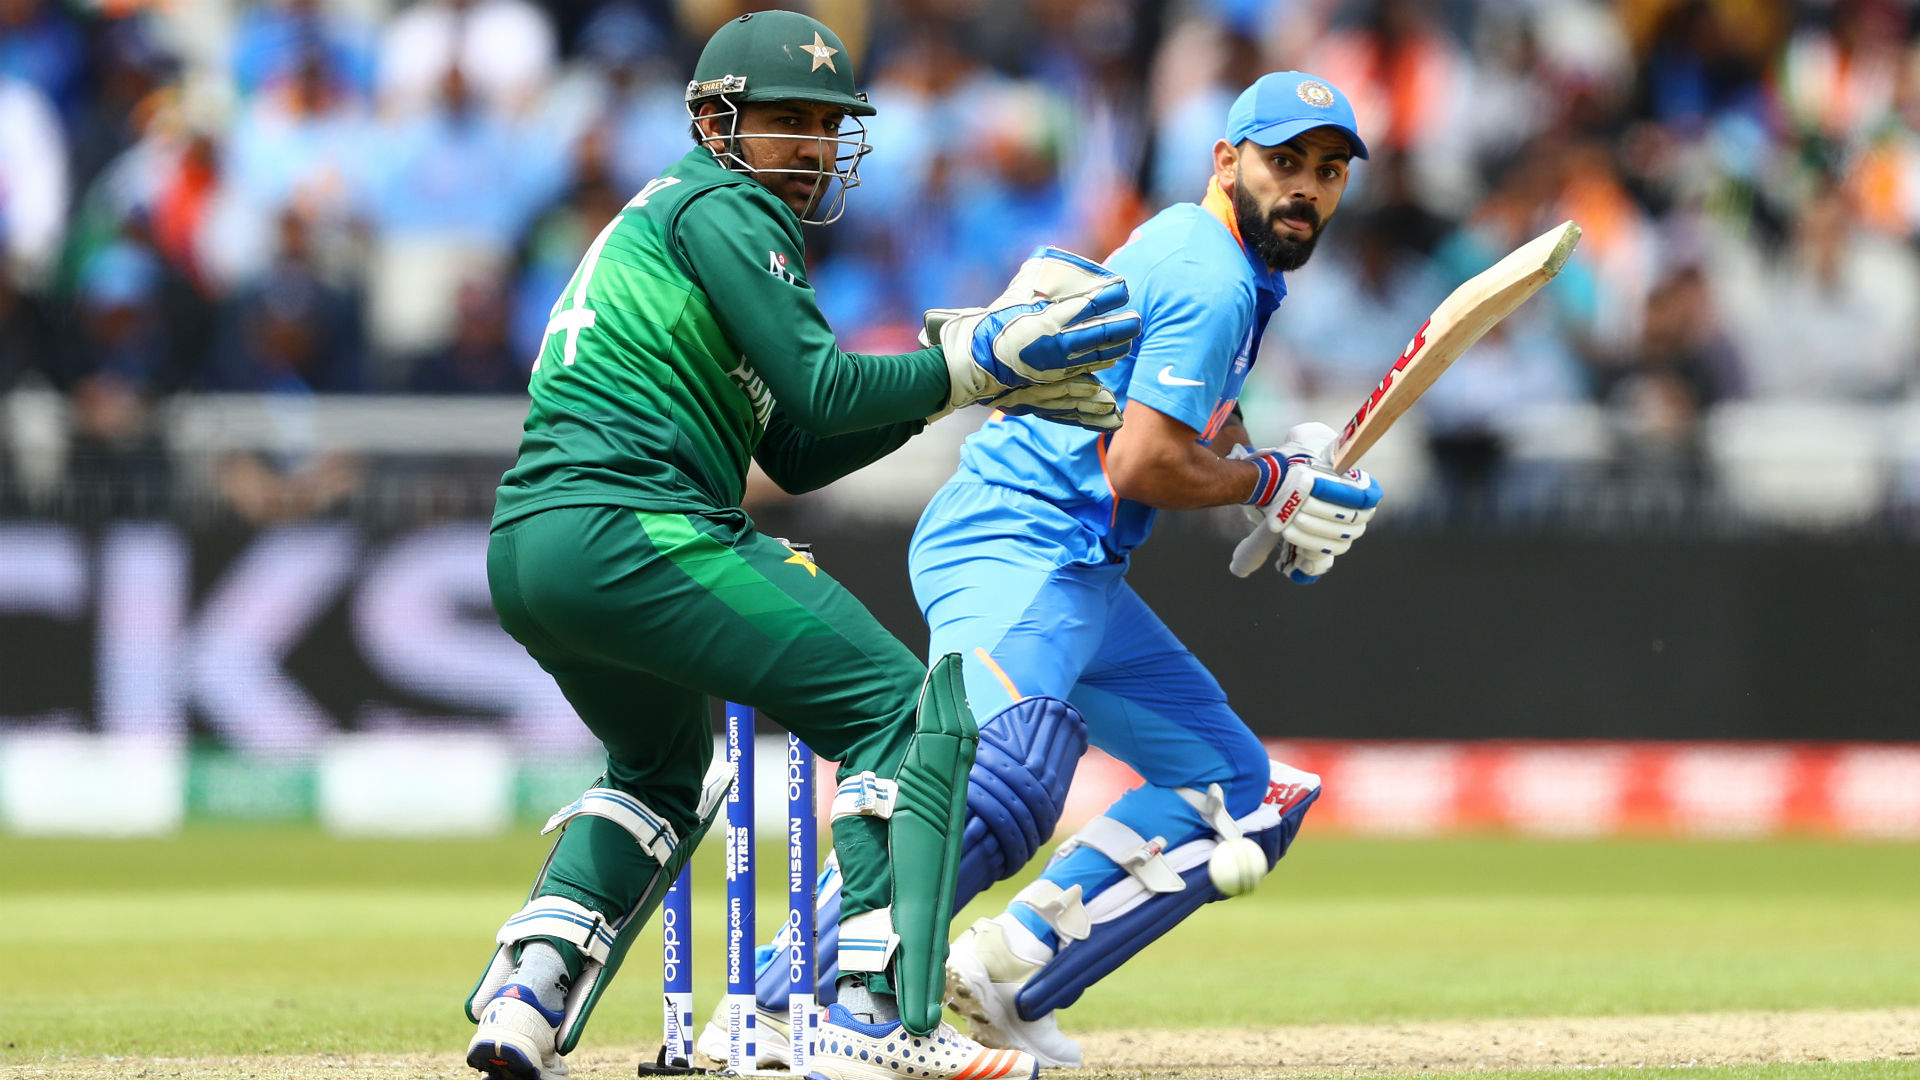 India rule with ruthless efficiency as Pakistan's rallying cry goes unheard